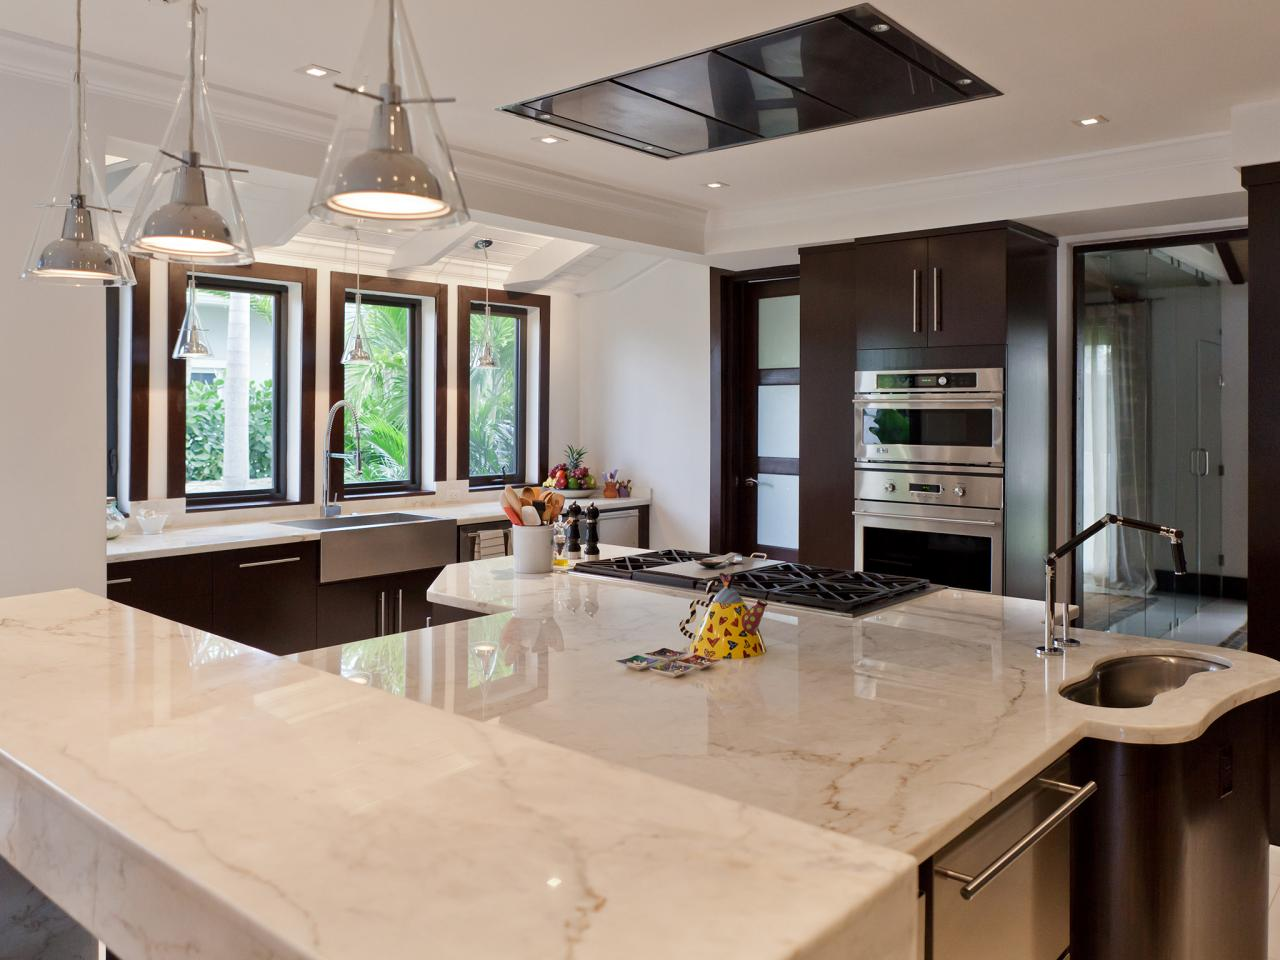 how v kitchen to saura stones dutt cut countertops black great marble countertop